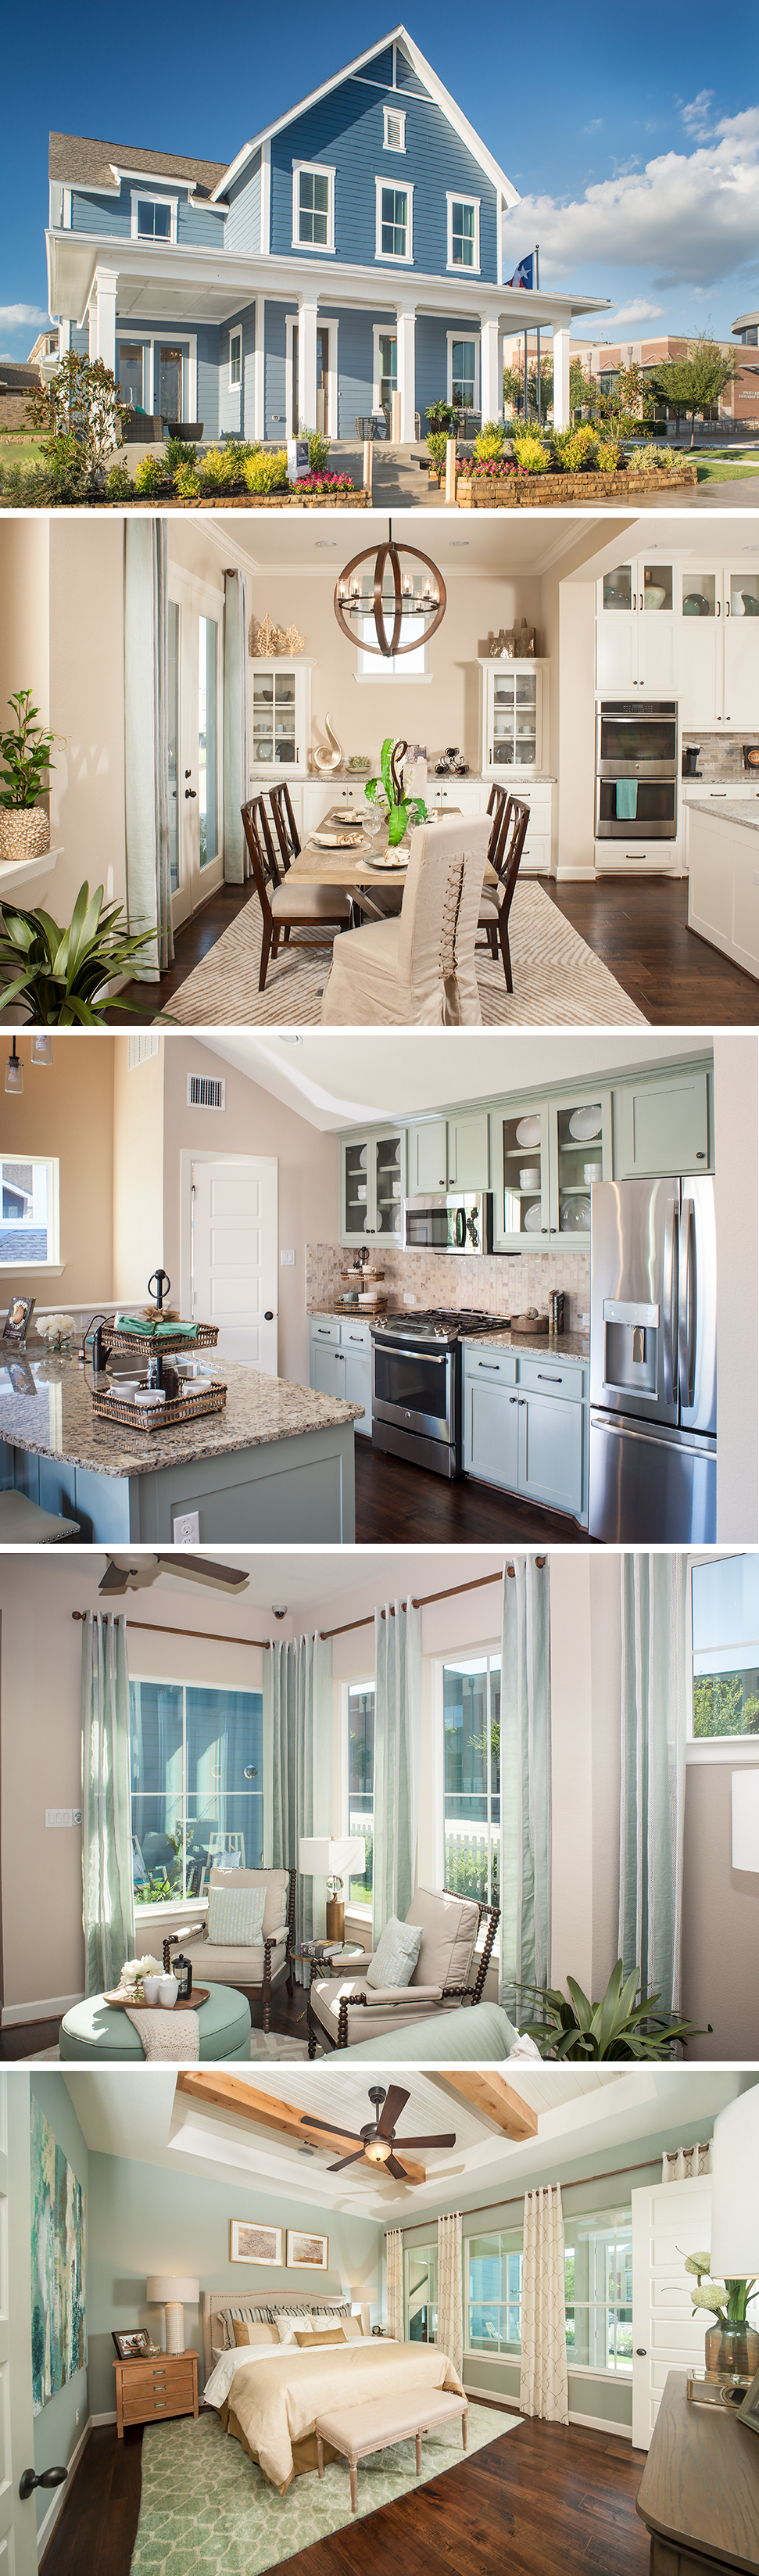 5 bedroom house interior the eastmoreland by david weekley homes in hometown cottage is a